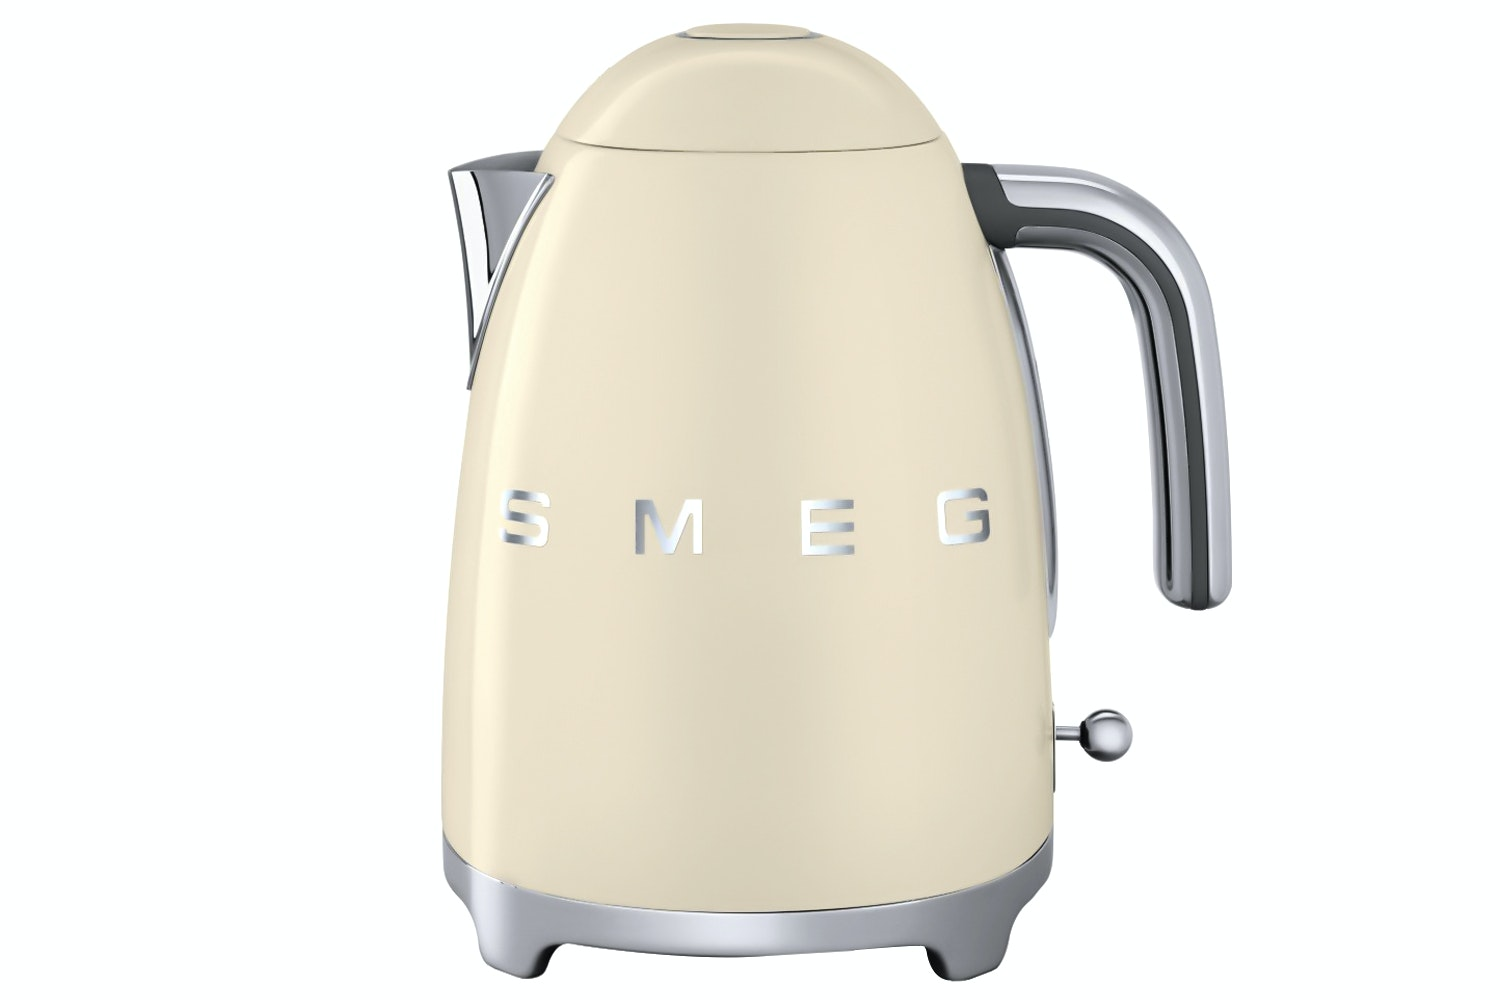 Smeg 1.7L Retro Style Kettle | KLF03CRUK | Cream